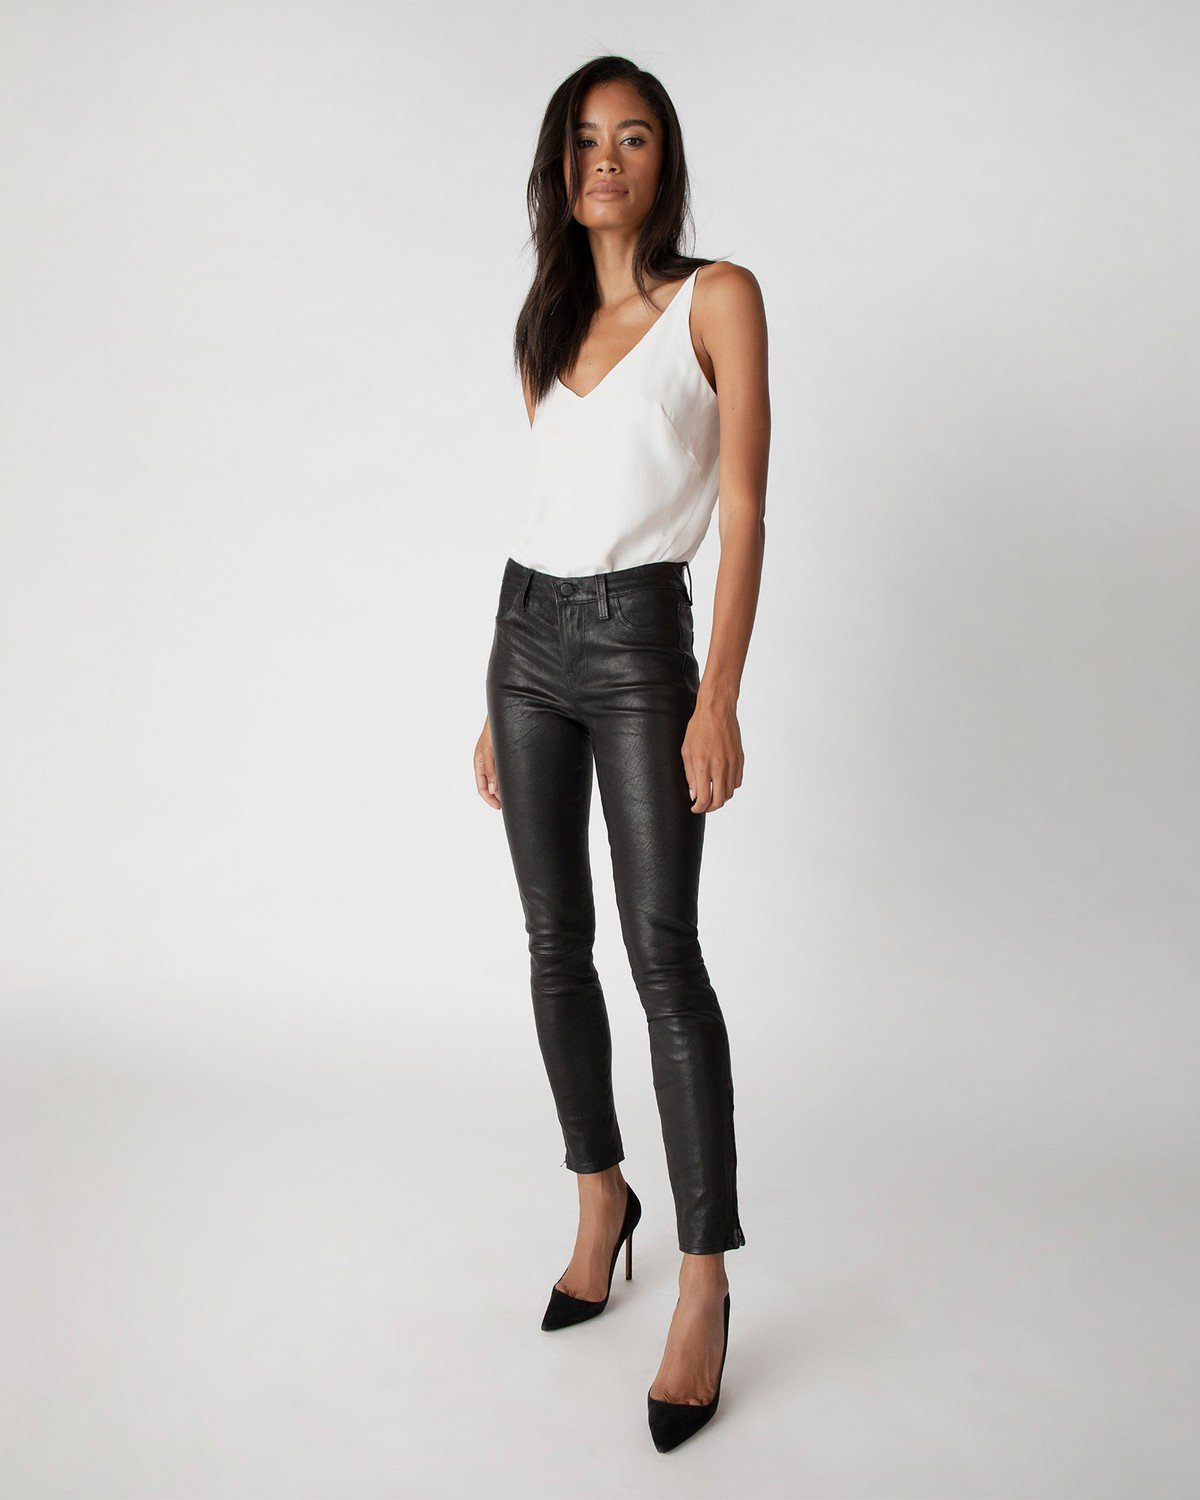 Edwards Imports Ltd Womens Pants J Brand | L8001 Mid Rise Skinny Pant